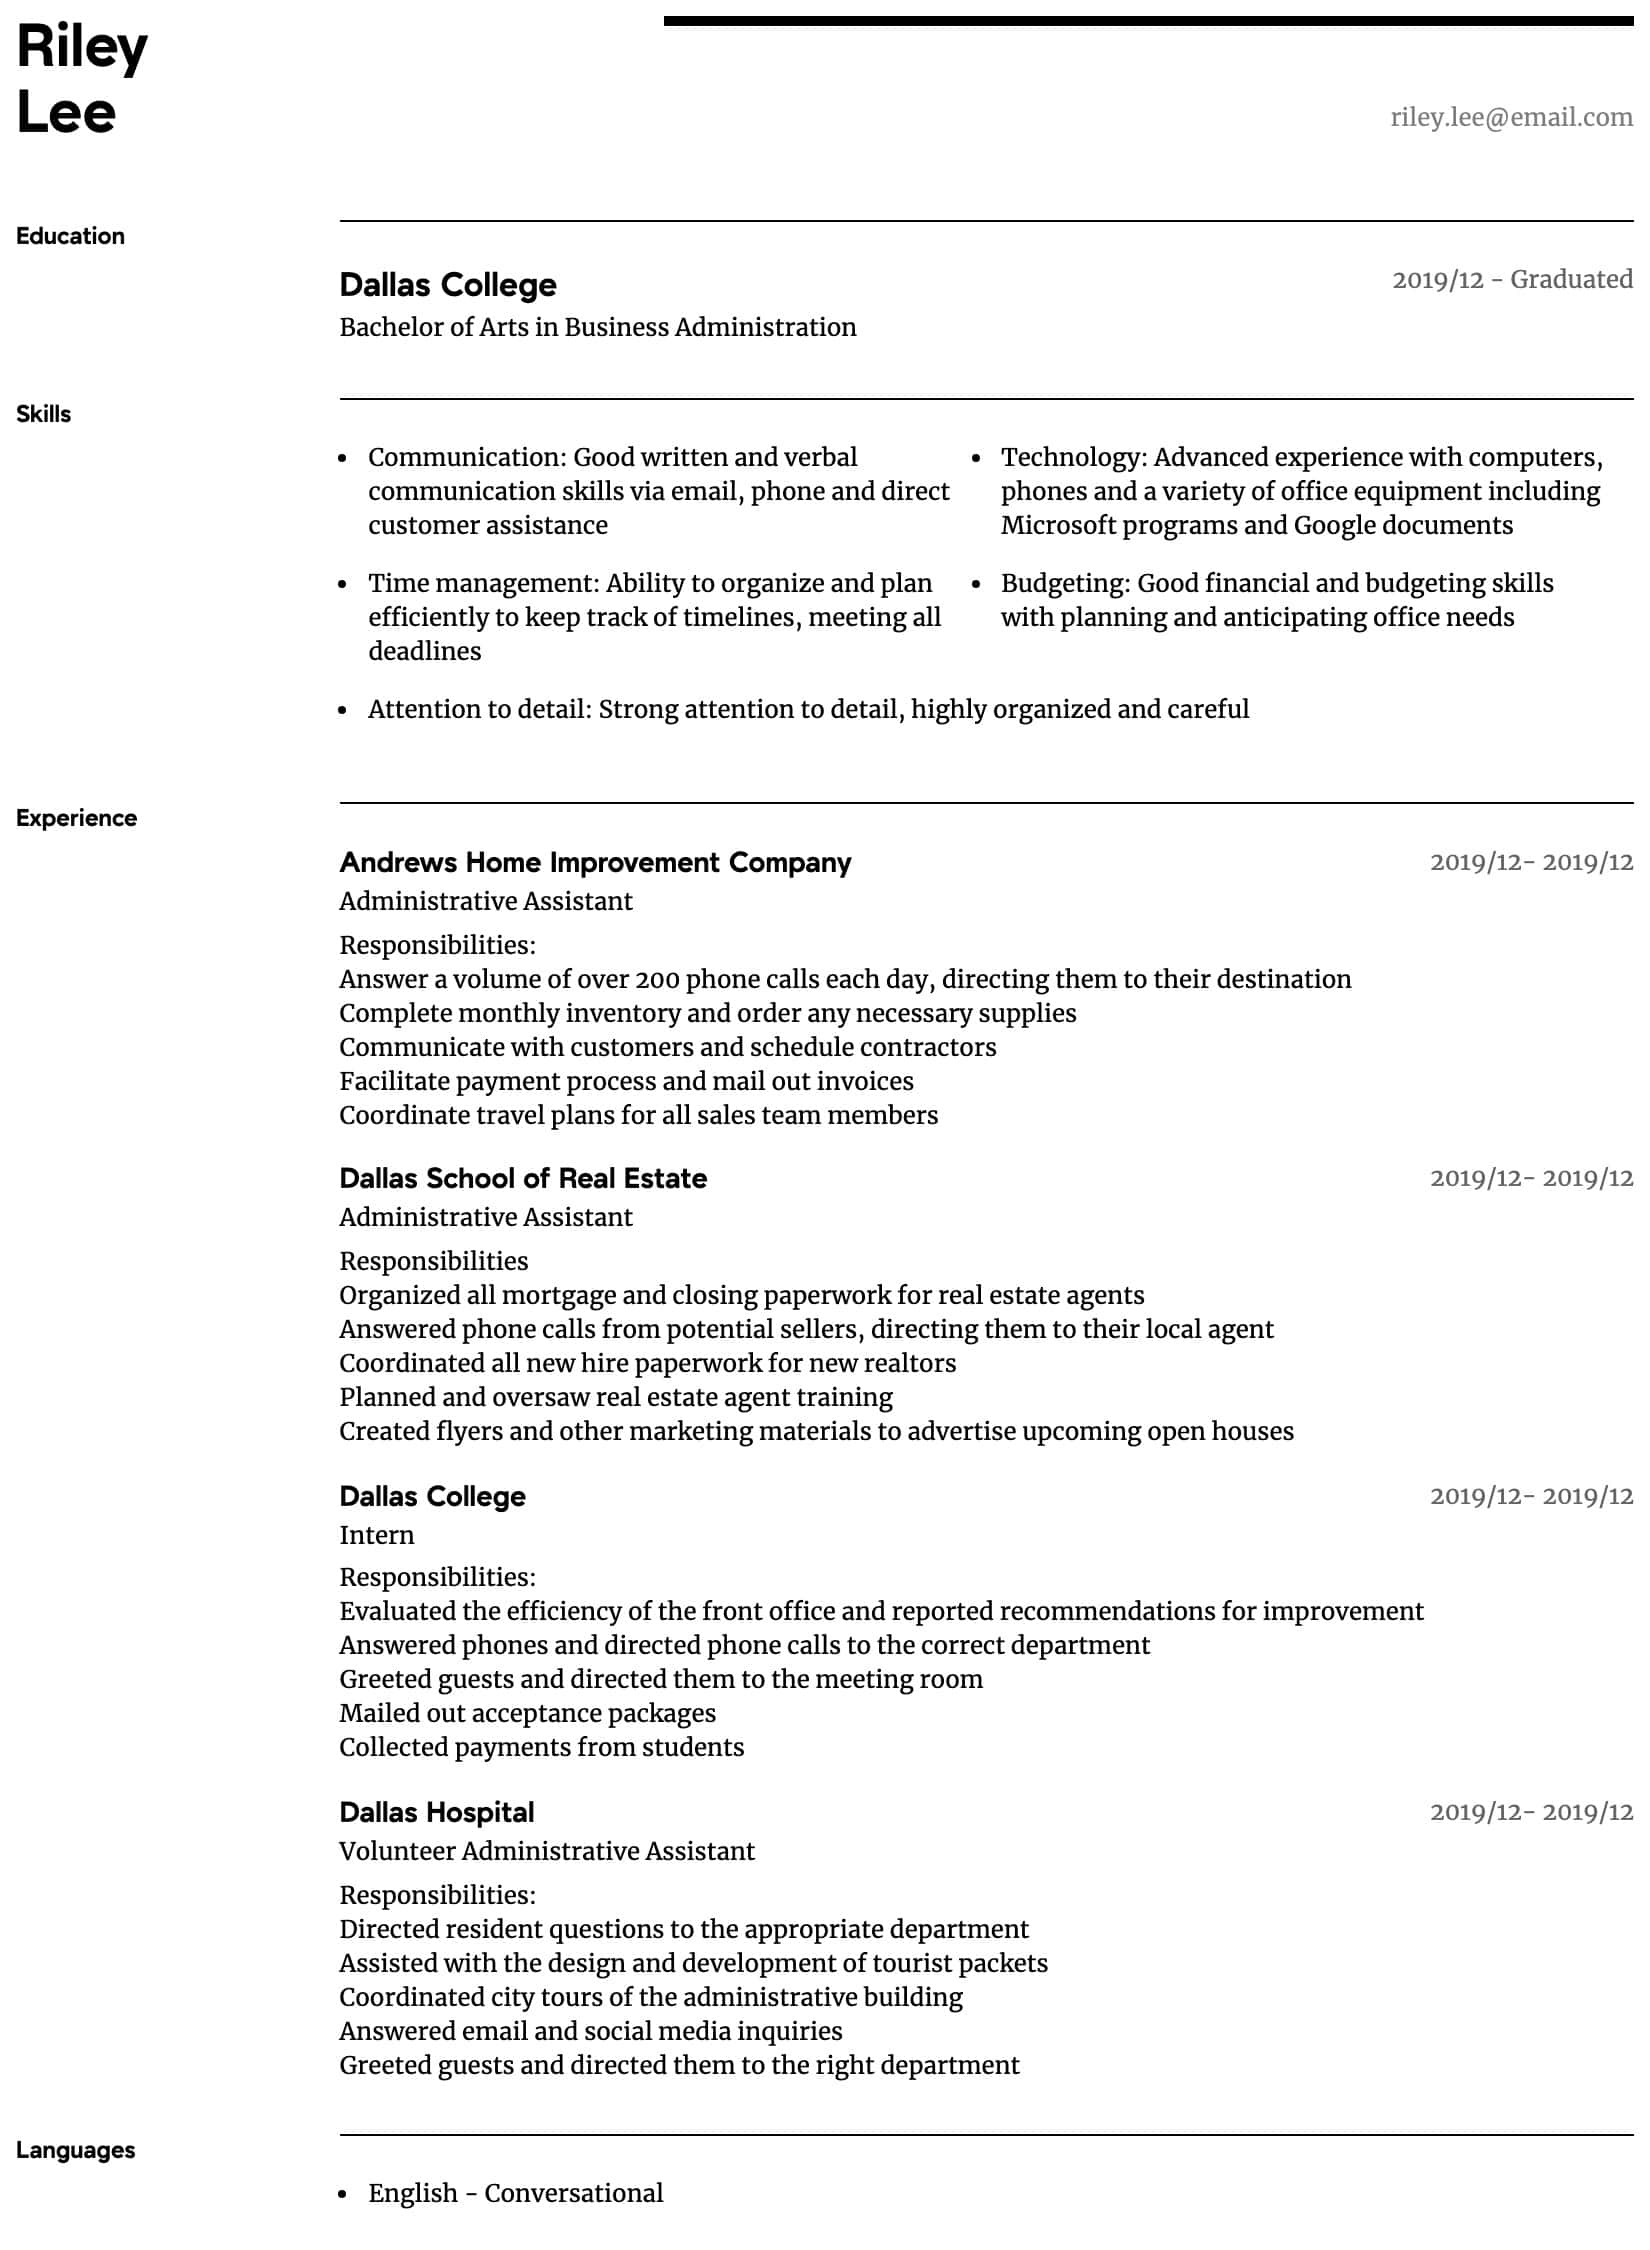 administrative assistant resume samples all experience levels answering phone calls Resume Answering Phone Calls Resume